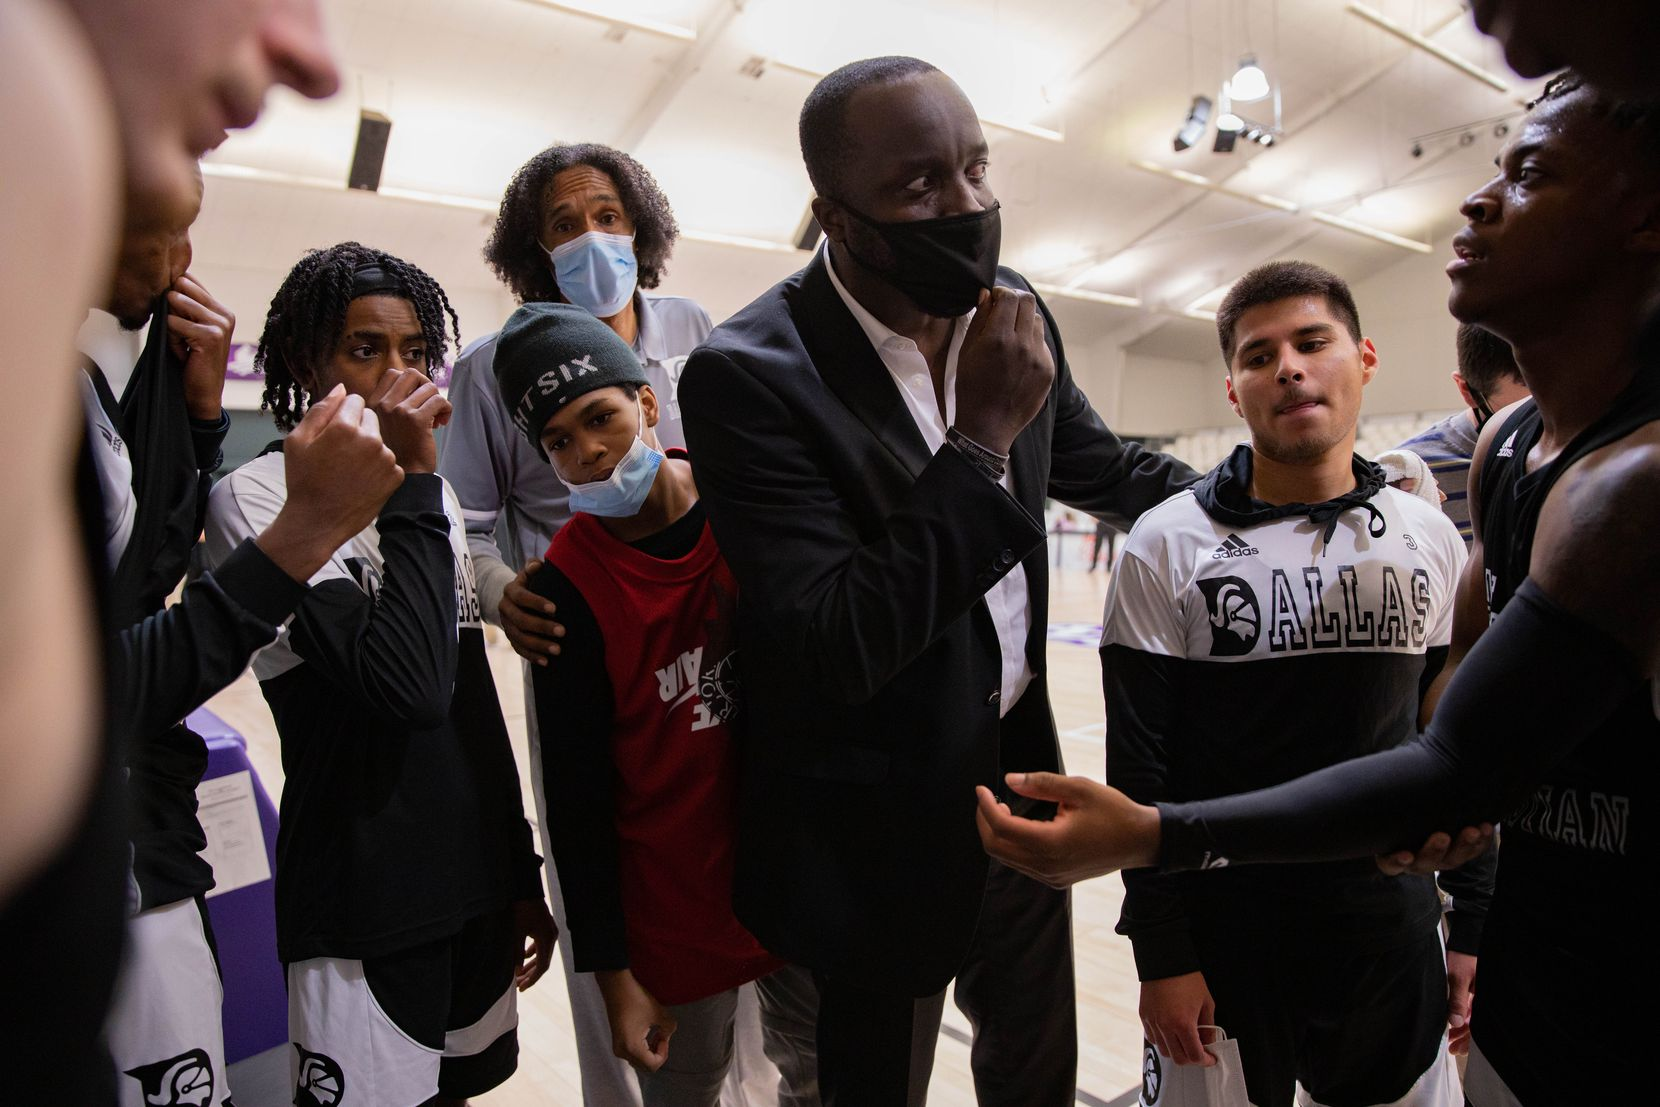 Dallas Christian College basketball coach Dwight Coleman (center right) huddles with his team before playing against Abilene Christian University, a NCAA Division I team, in Abilene on Tuesday, Dec. 29, 2020. (Juan Figueroa/ The Dallas Morning News)